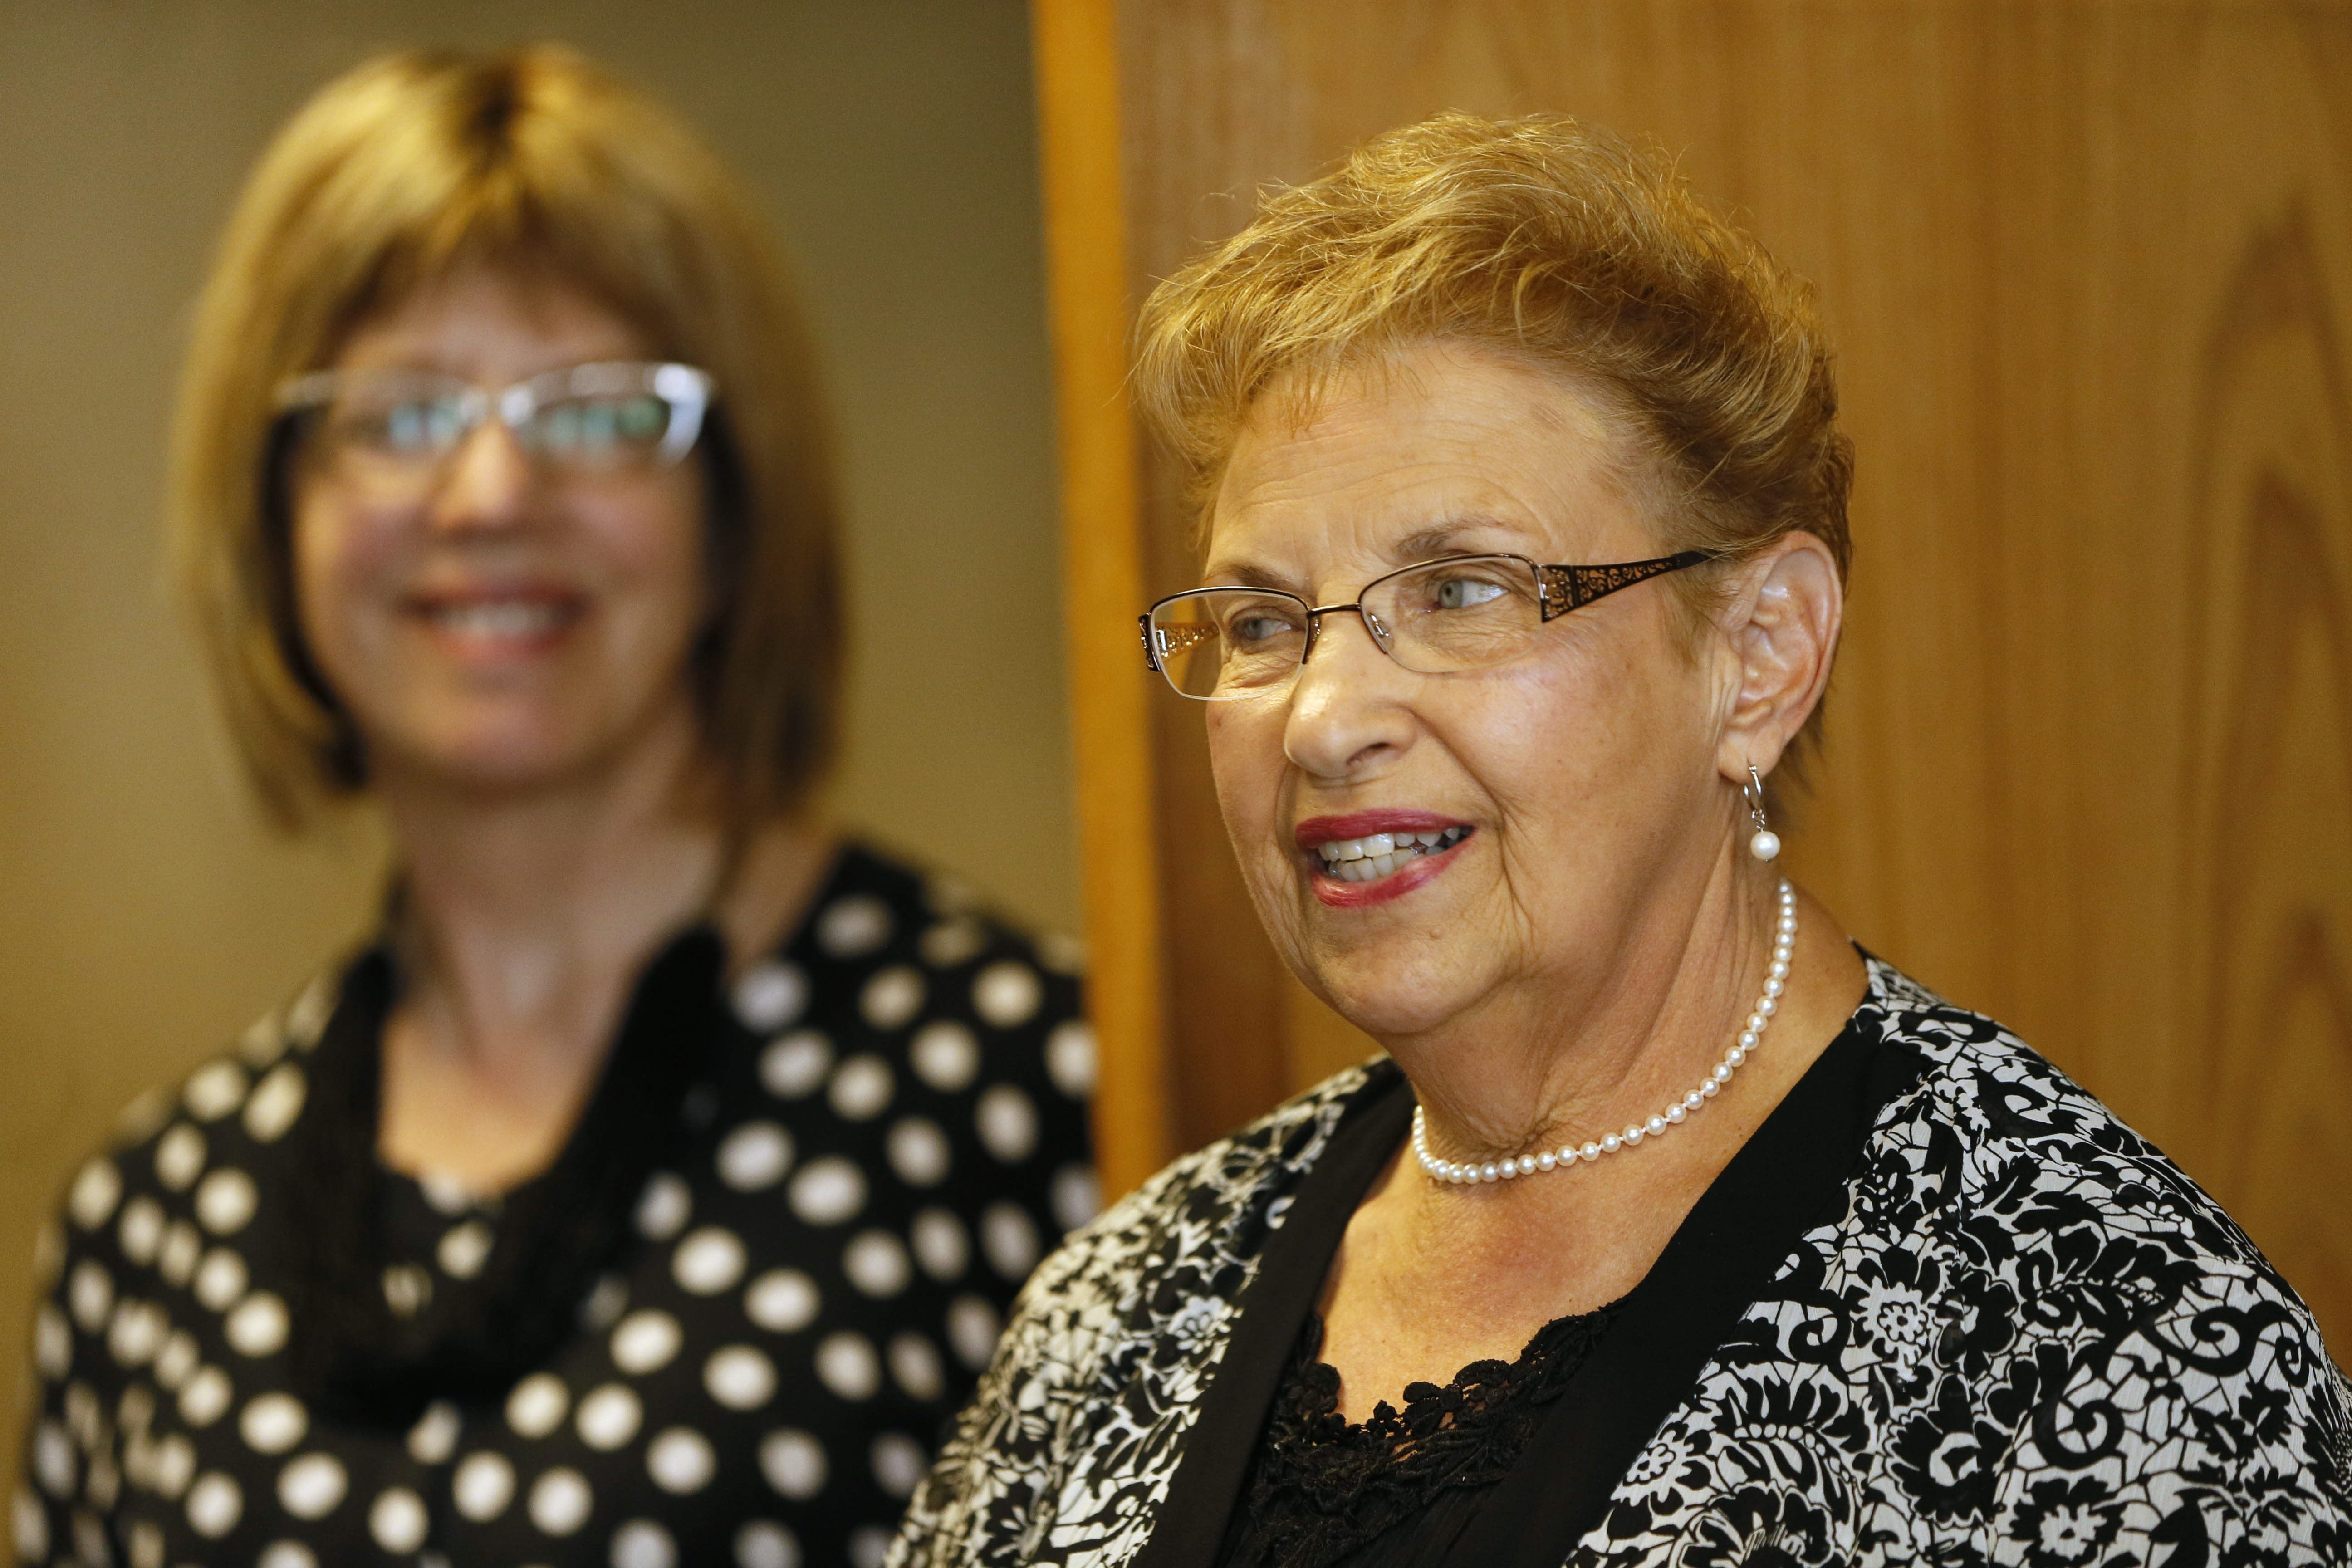 """Rose Marie """"Ro"""" Hall says she appreciates the honor of being named Erie County's """"Senior of the Year"""" at an event in the county executive's office at the Rath Building on Wednesday."""